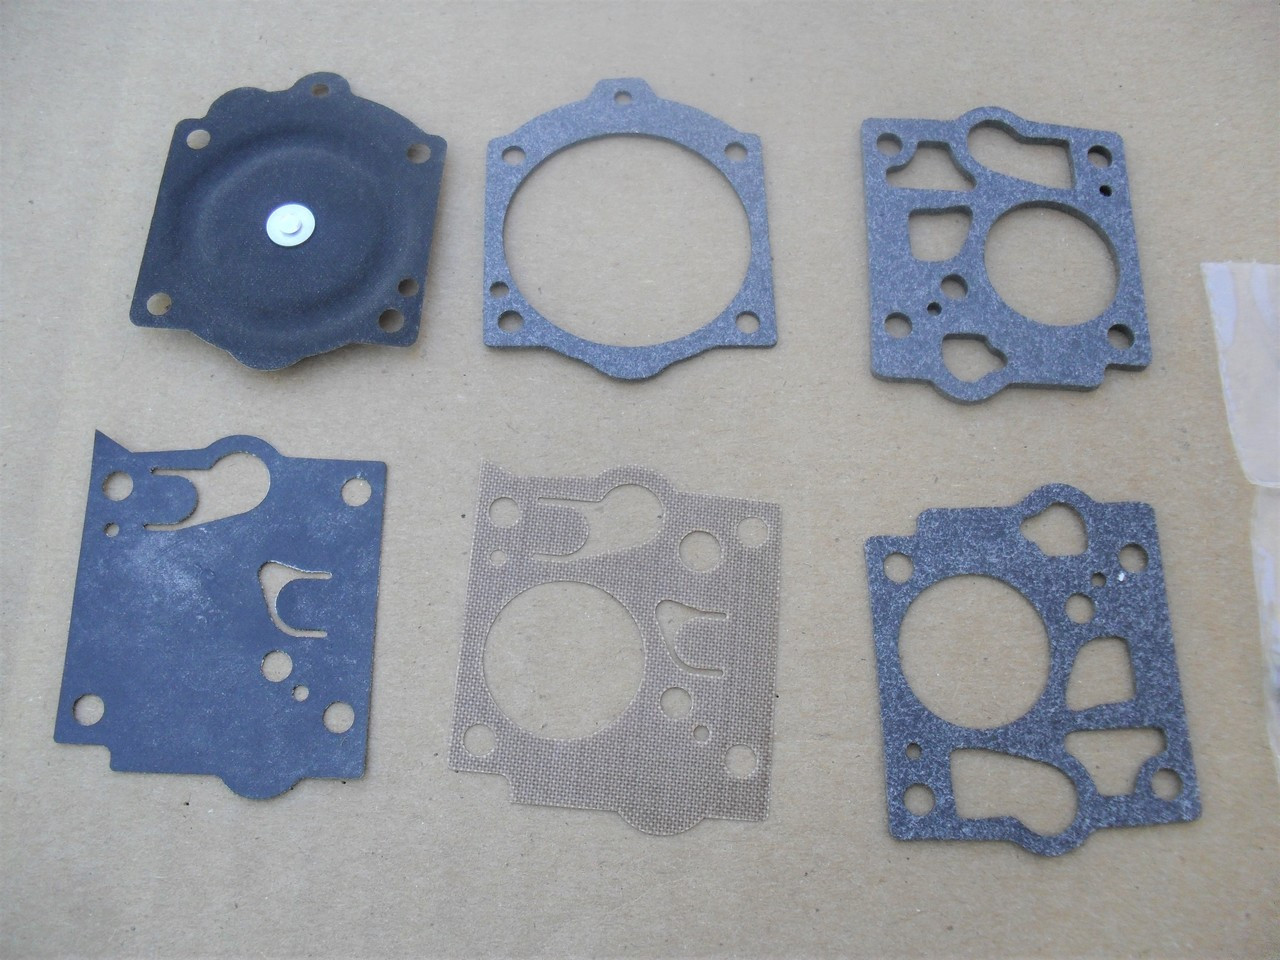 medium resolution of carburetor rebuild kit for jacobsen sno burst snowblower k1 sdc k1sdc k10